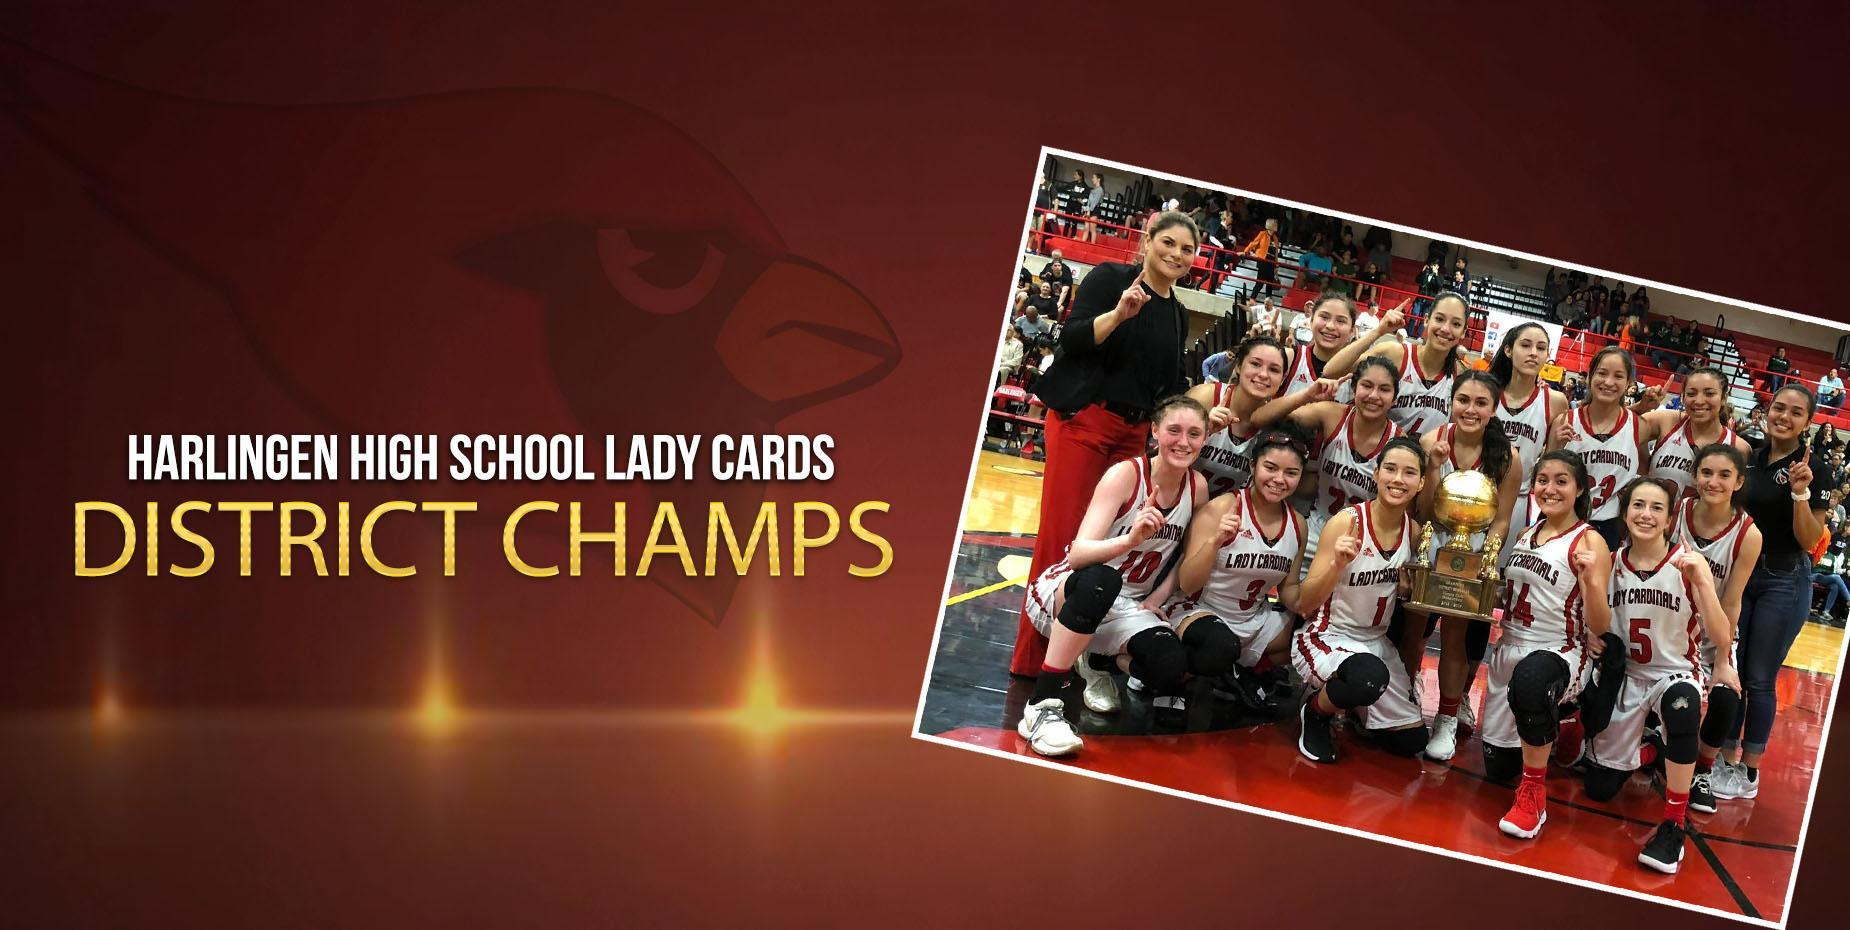 Lady Cards District Champs